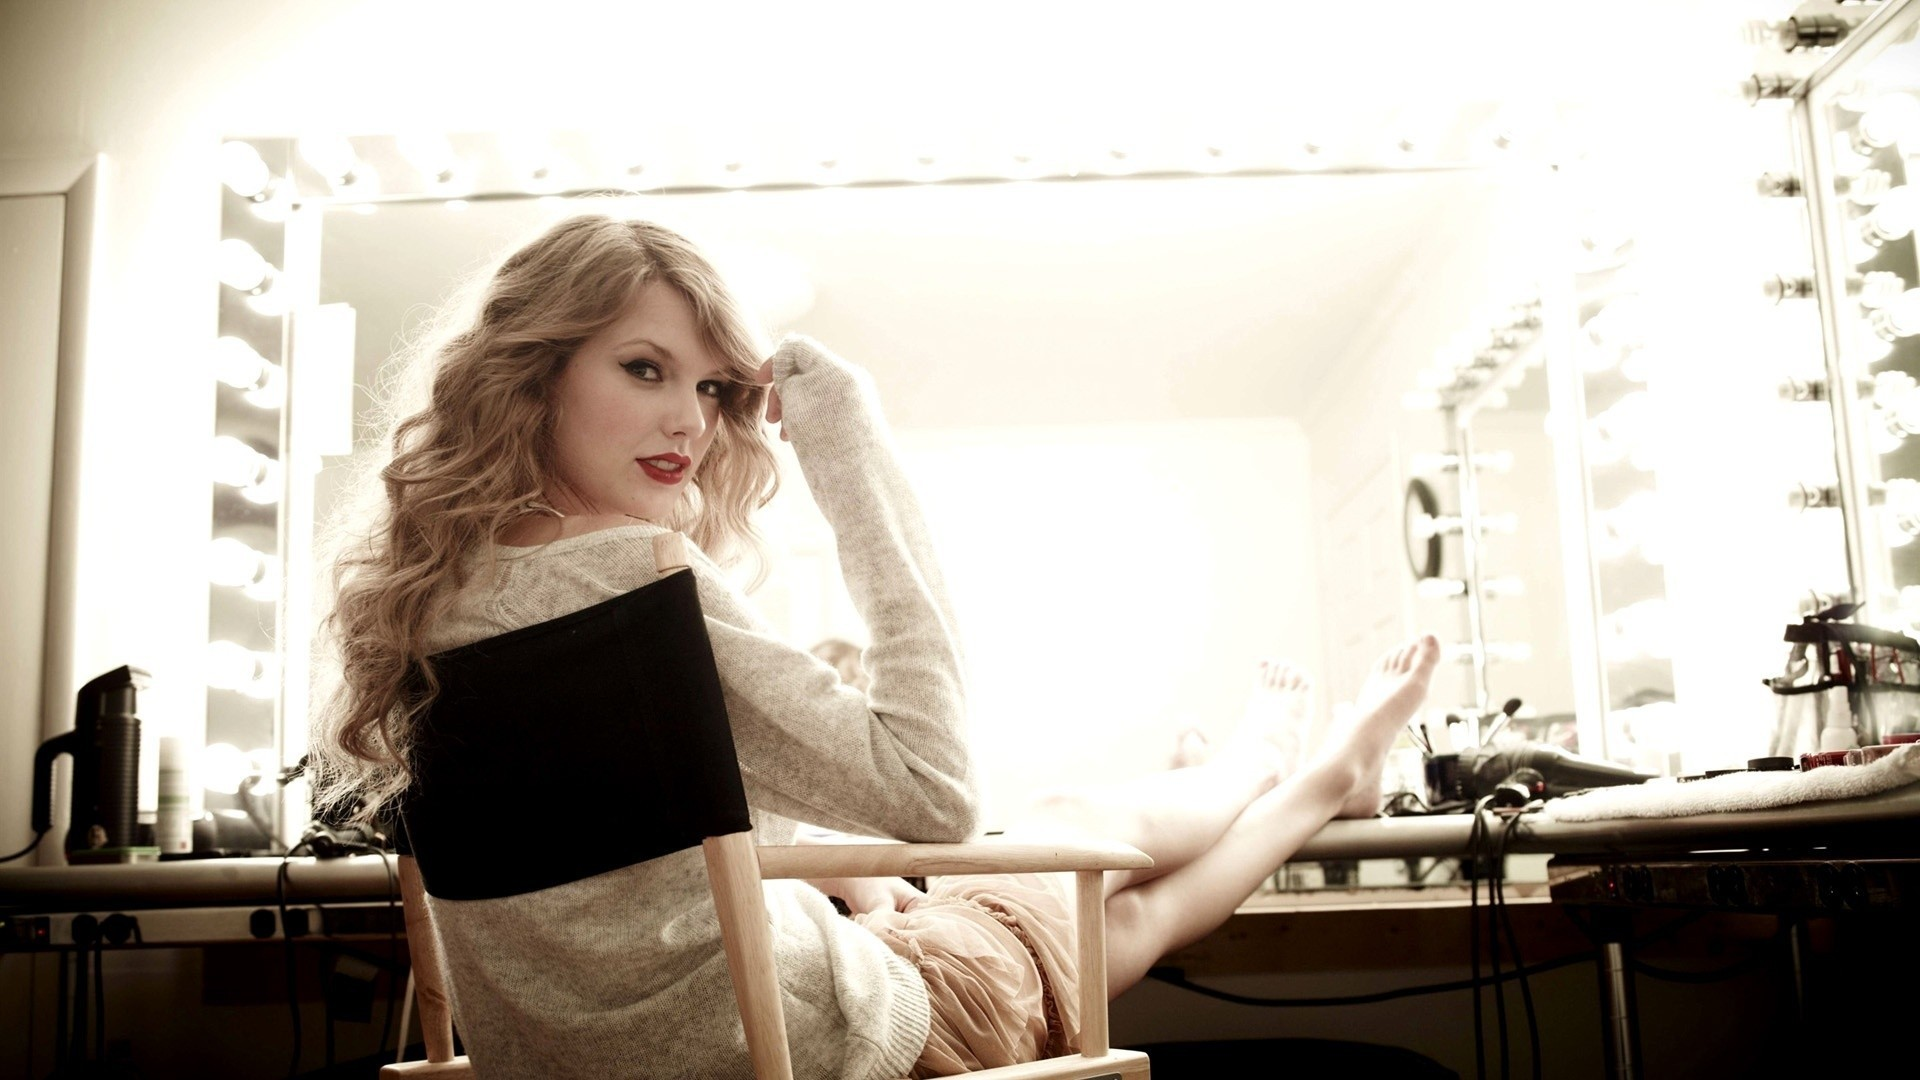 blondes woman mirrors taylor HD Wallpaper